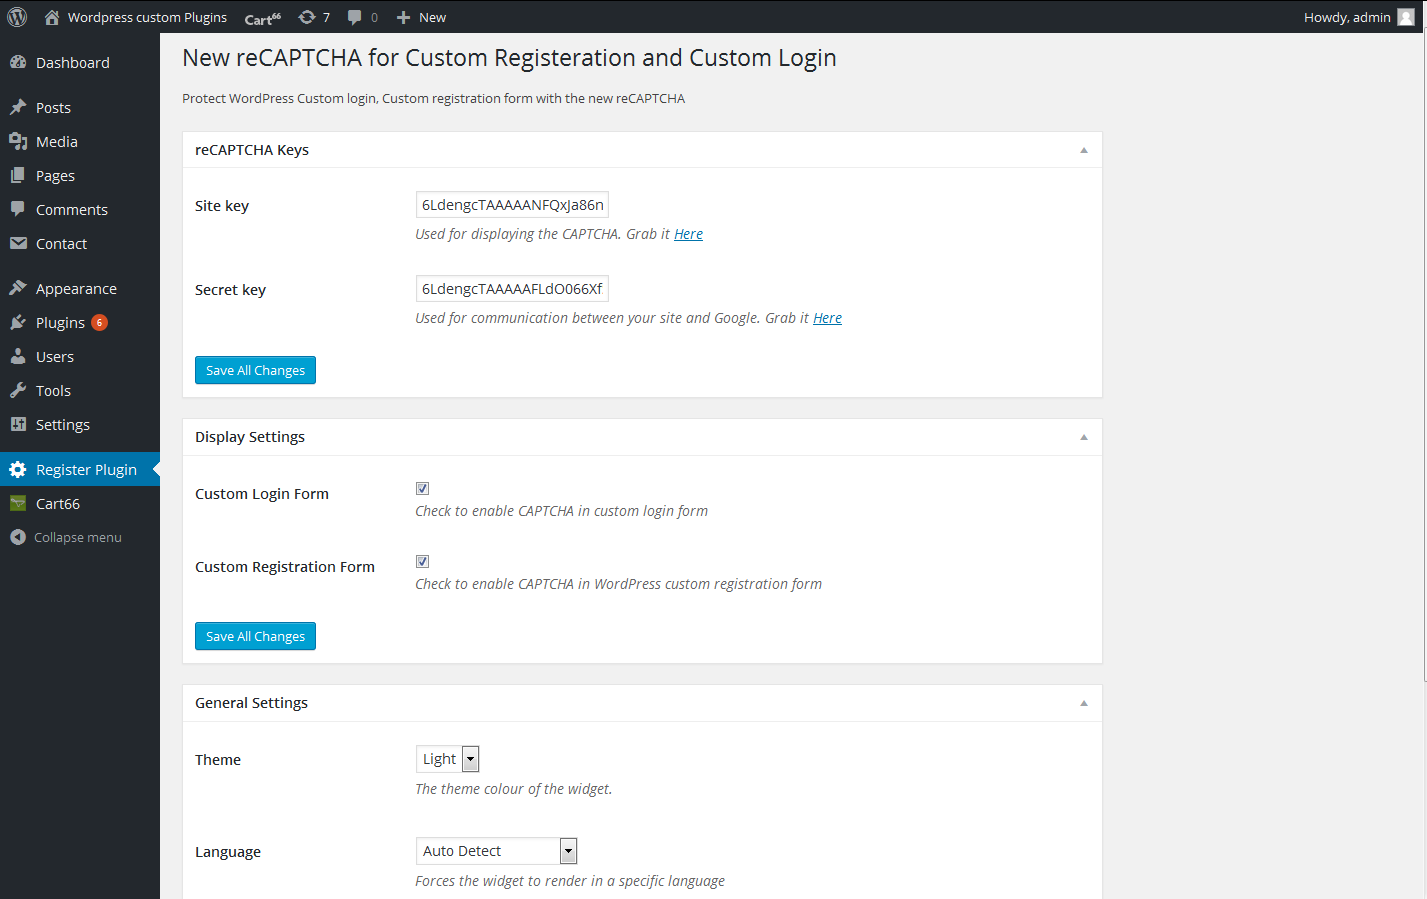 custom-registration-and-login-forms-with-new-recaptcha screenshot 1